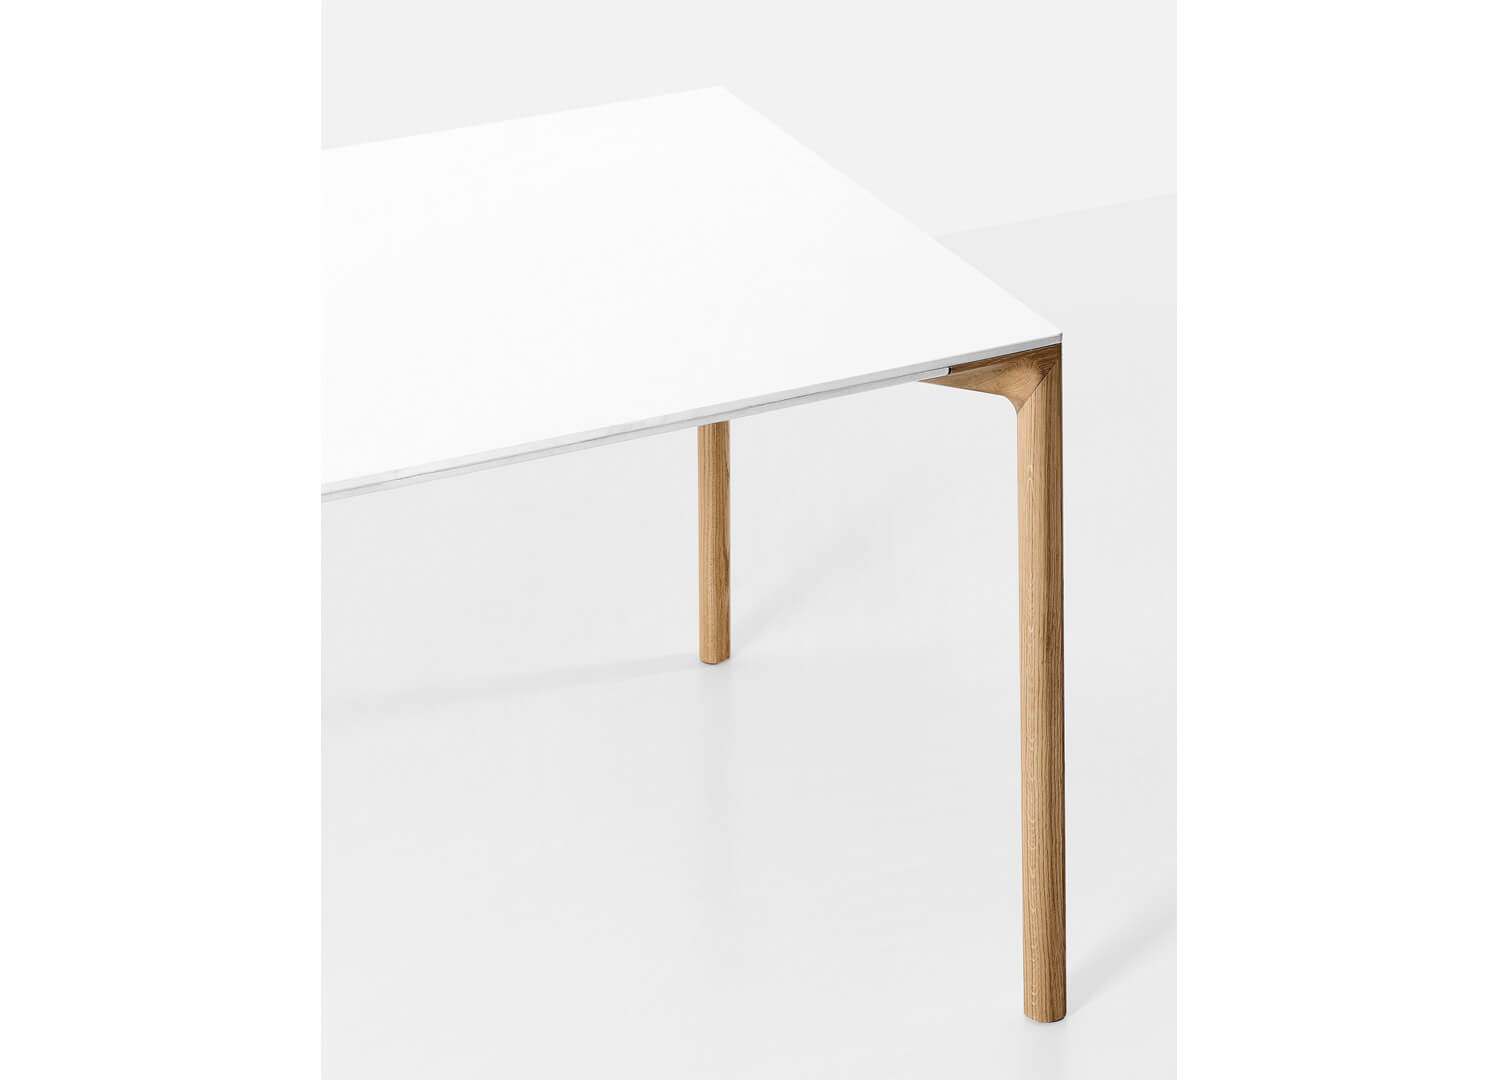 Boiacca wood table est living products for Designer directory